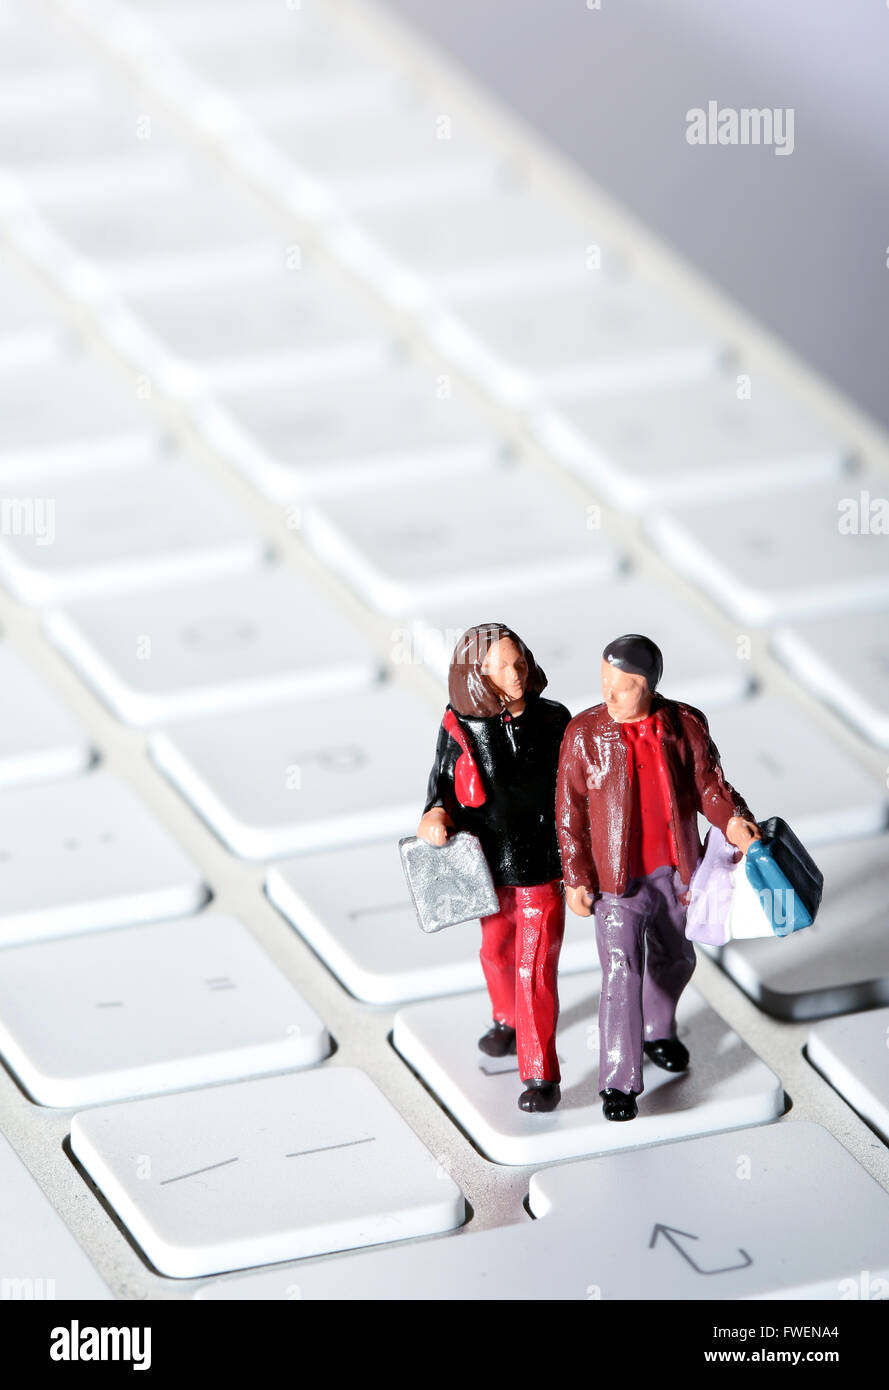 Online Shopping concept image of a couple on a computer keyboard carrying shopping bags - Stock Image